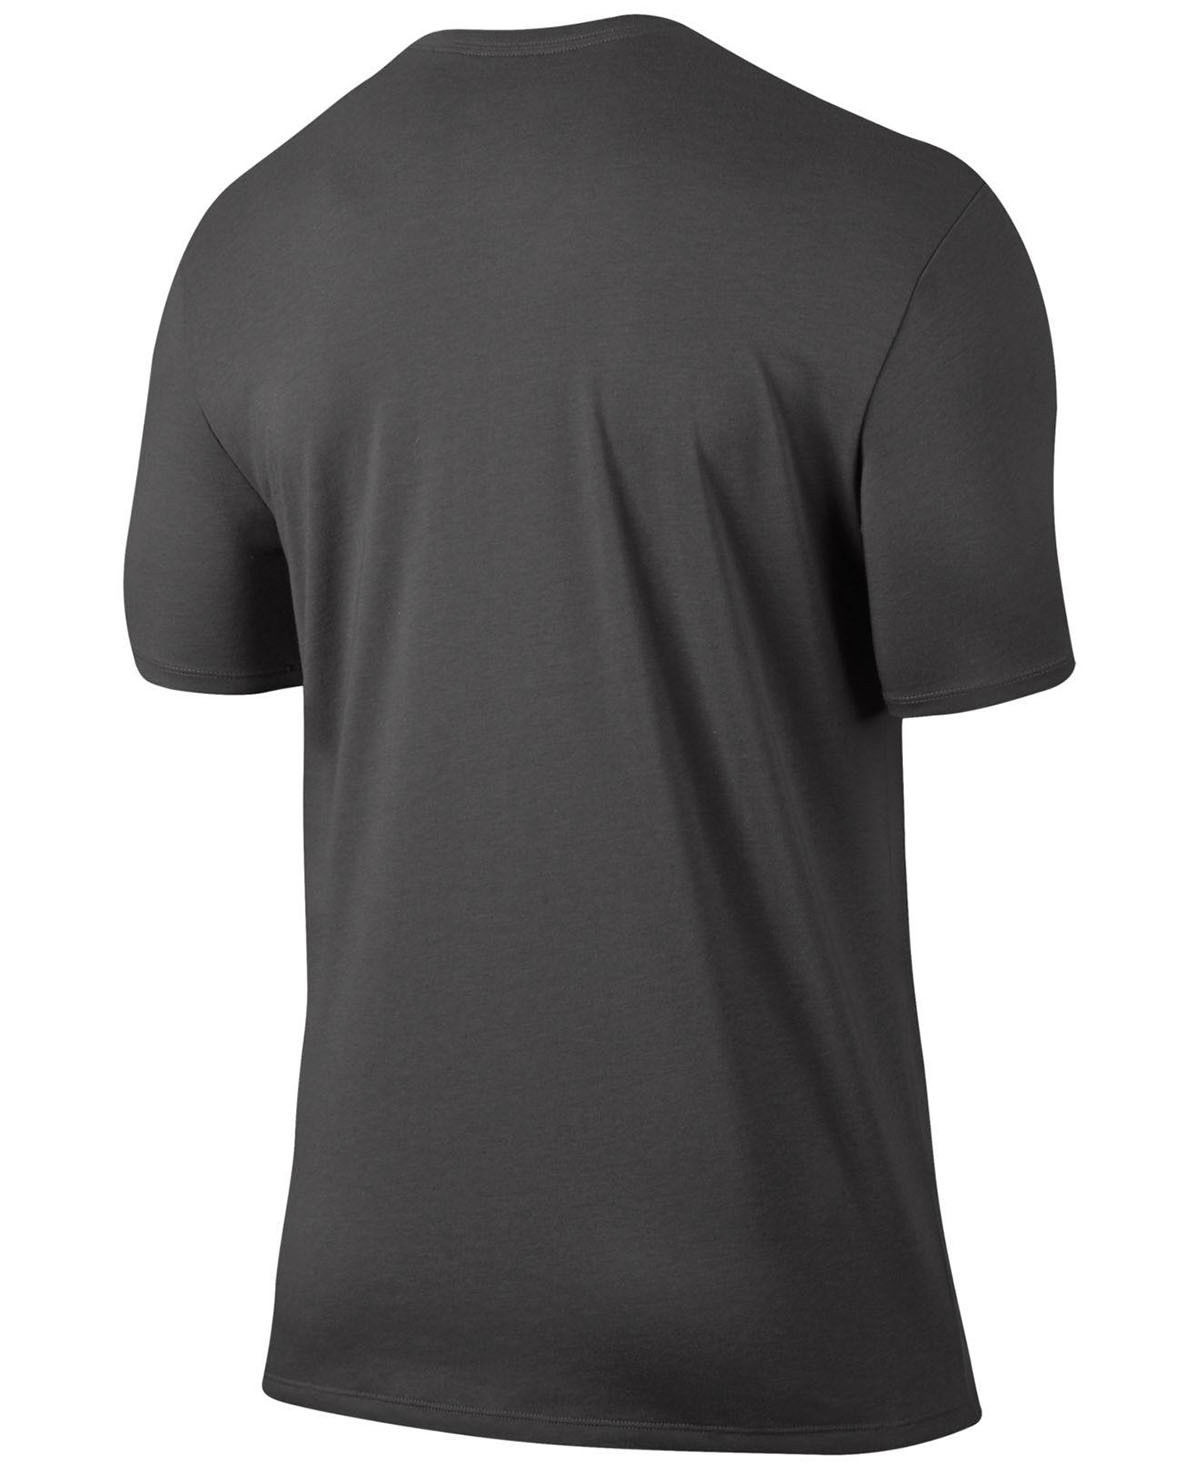 NEW MENS NIKE DRI-FIT CREW NECK JUST DO IT GRAPHIC GREY T SHIRT TEE L image 2